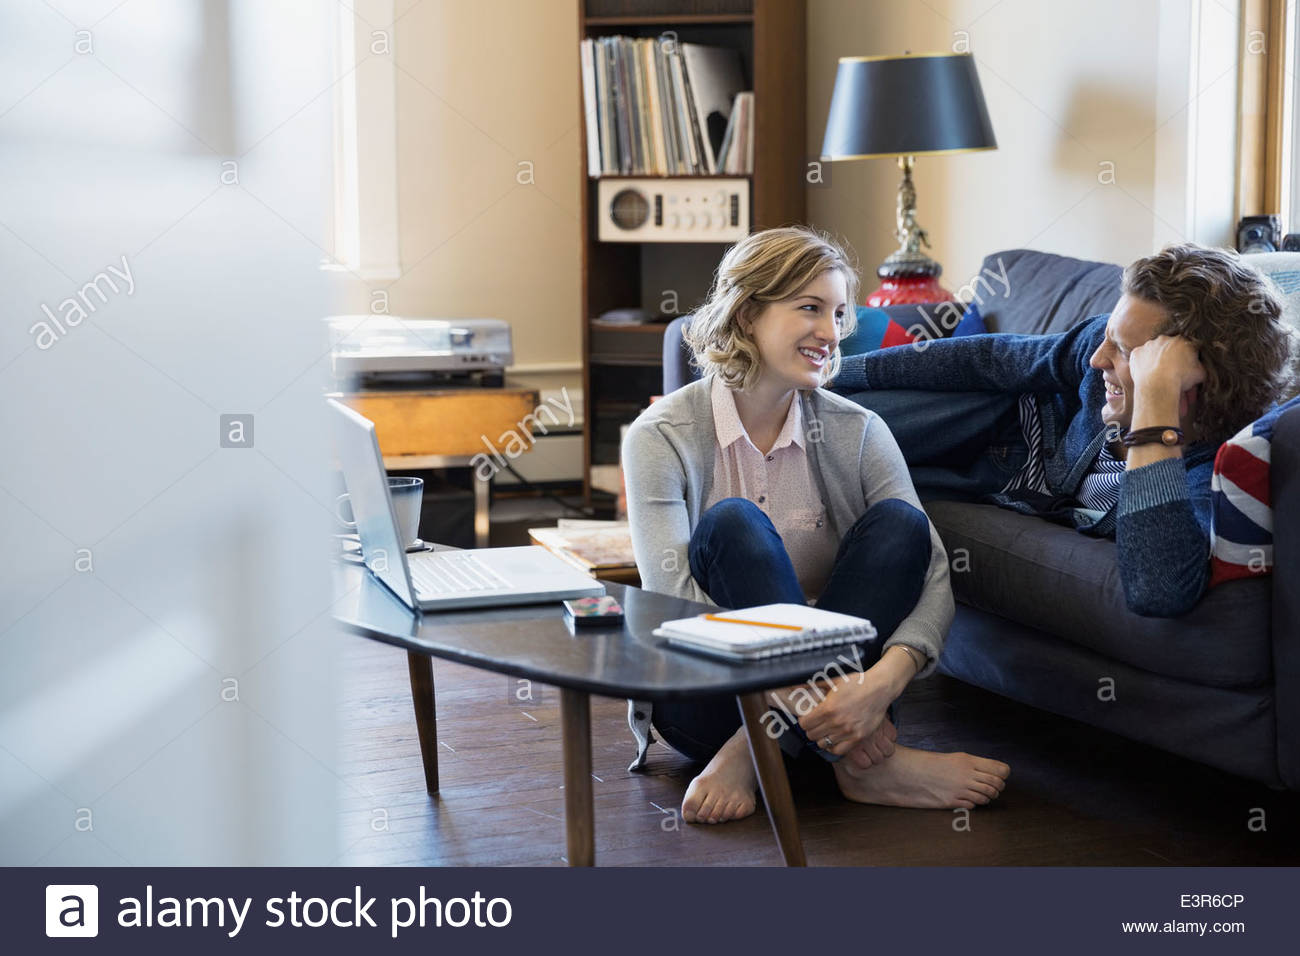 Couple talking in living room - Stock Image